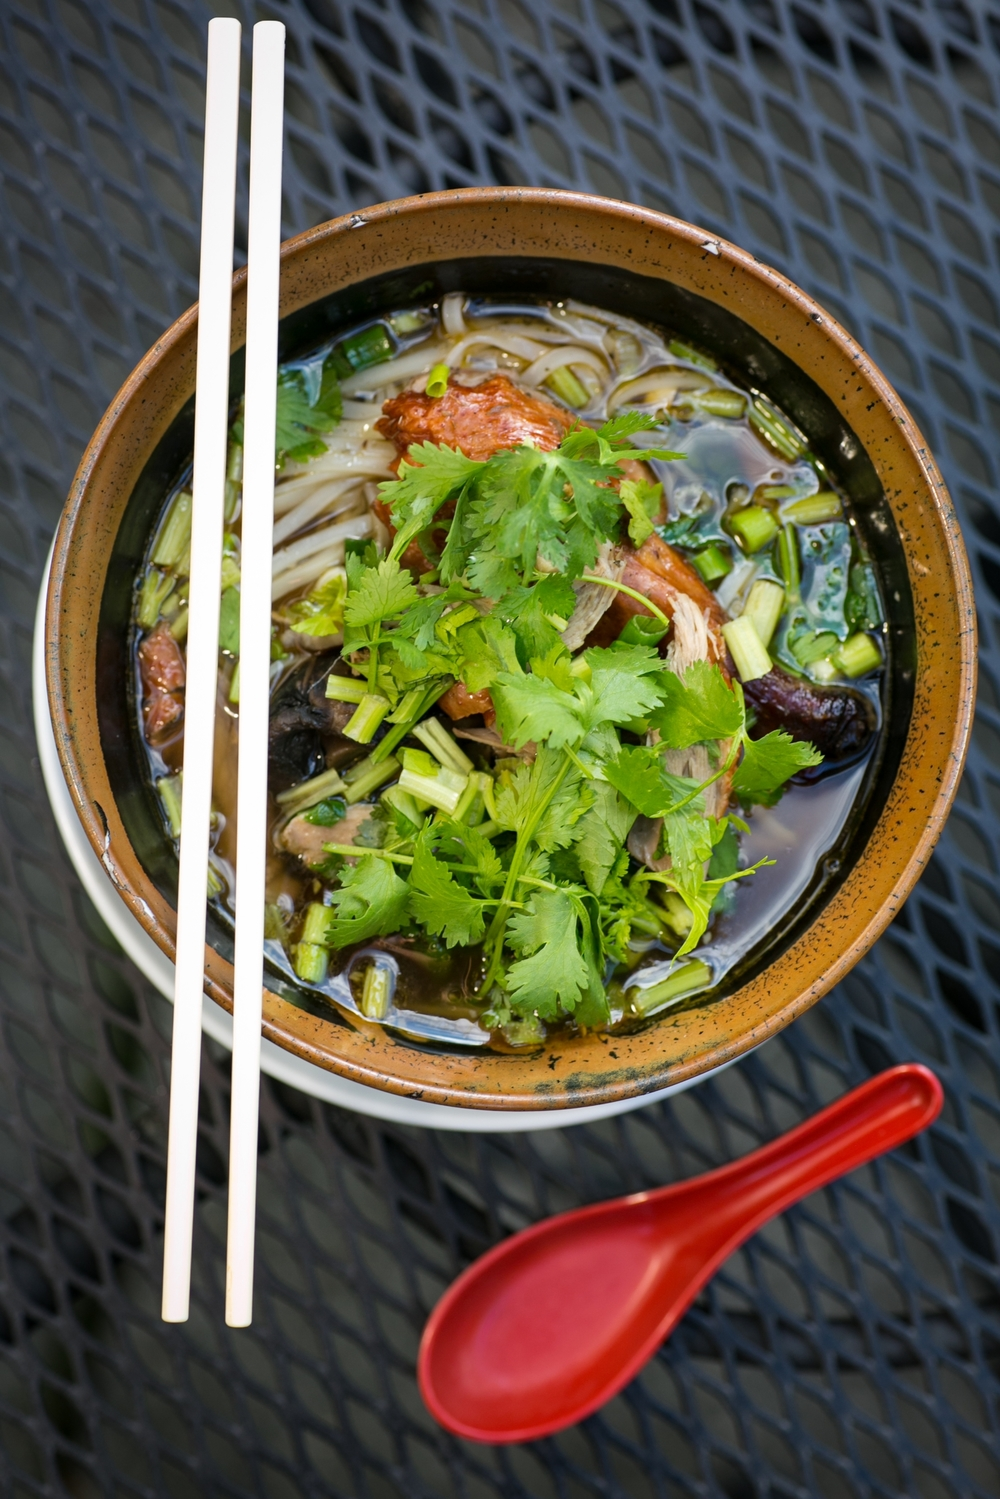 ROASTED DUCK NOODLE SOUP: